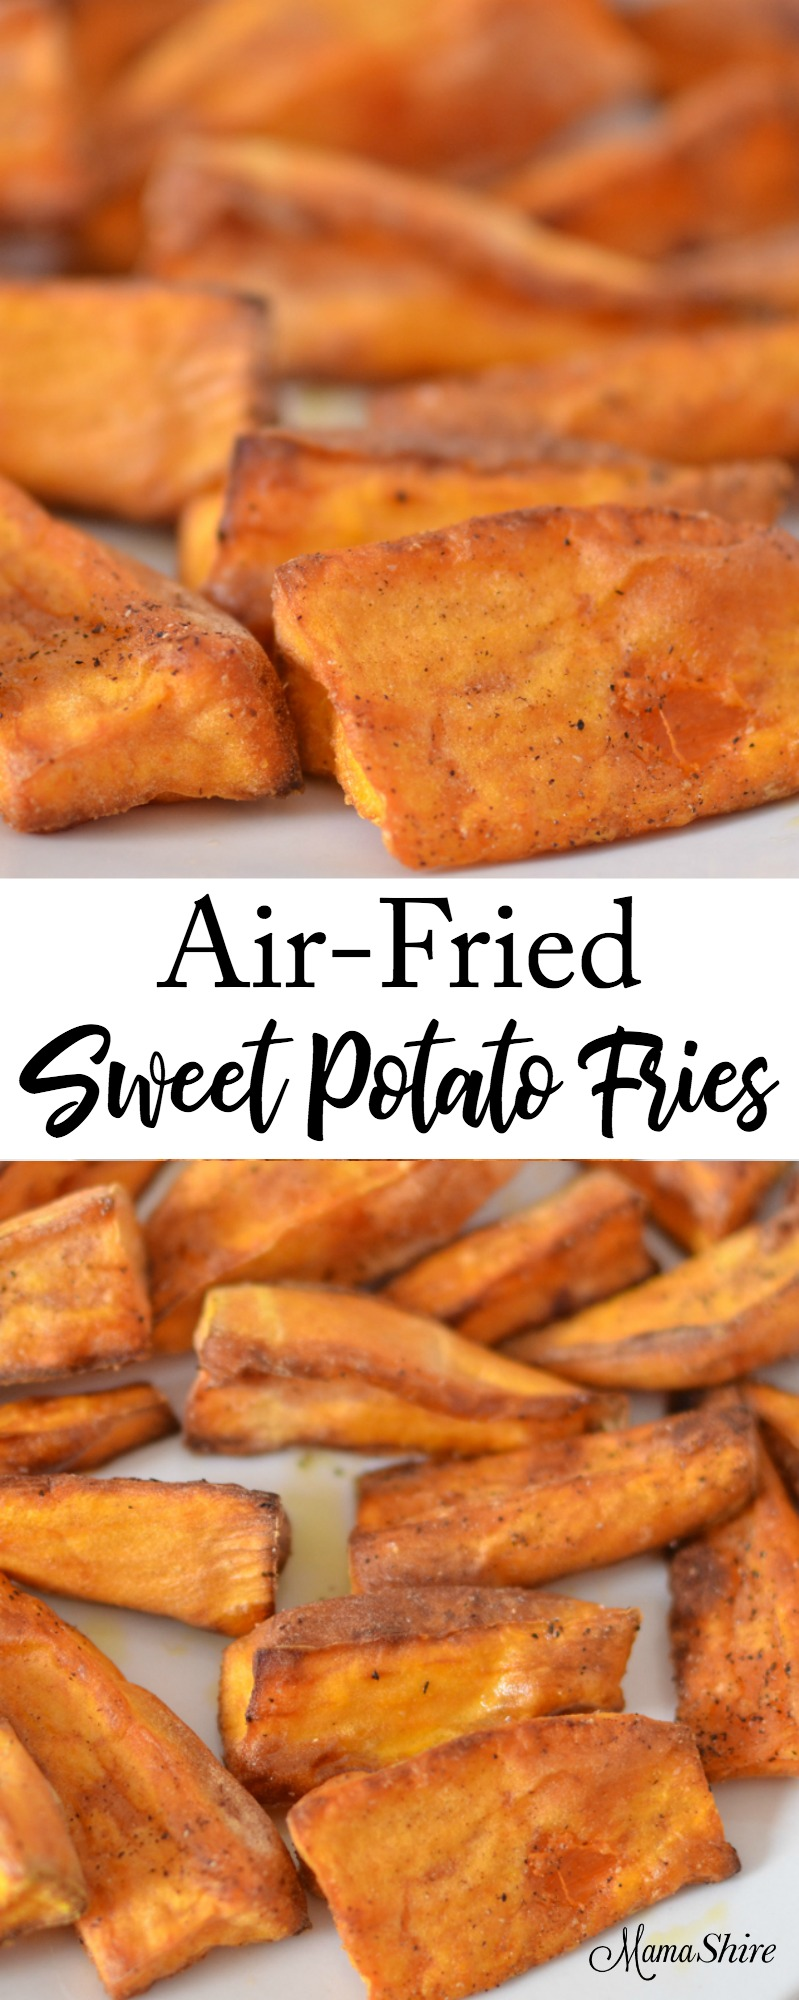 Air-Fried Sweet Potato Fries - Gluten-free, Trim Healthy Mama-E